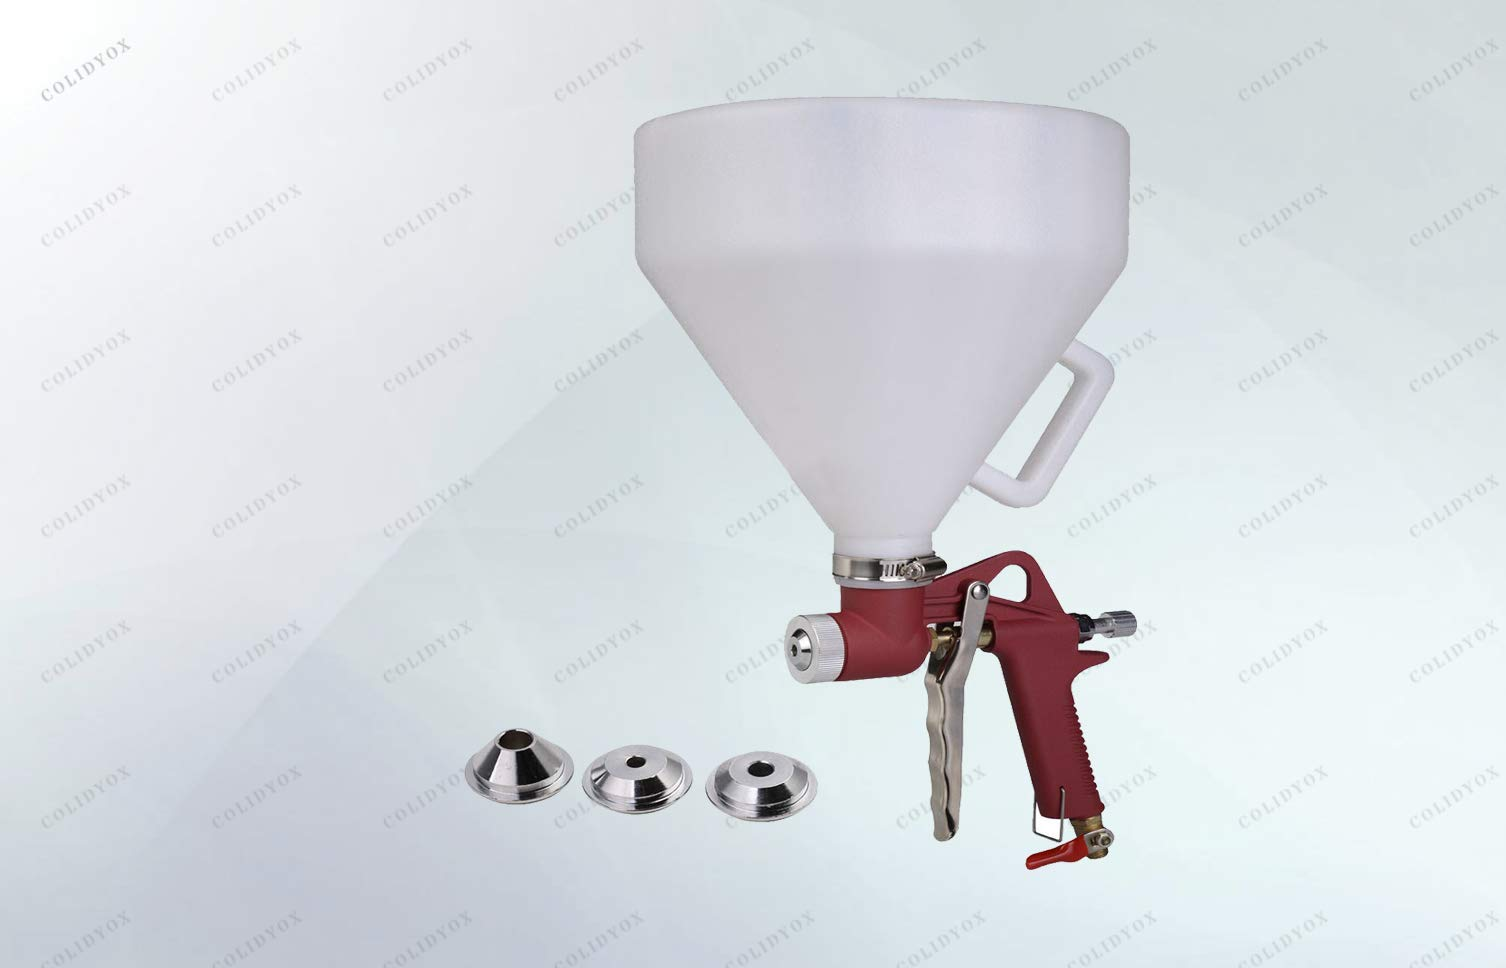 COLIDYOX_Hopper spray gun, ideal tool for applying texture to walls and ceilings, Easy to use with a lightweight. Reliable quality. Perfect performance with adjustable material control.